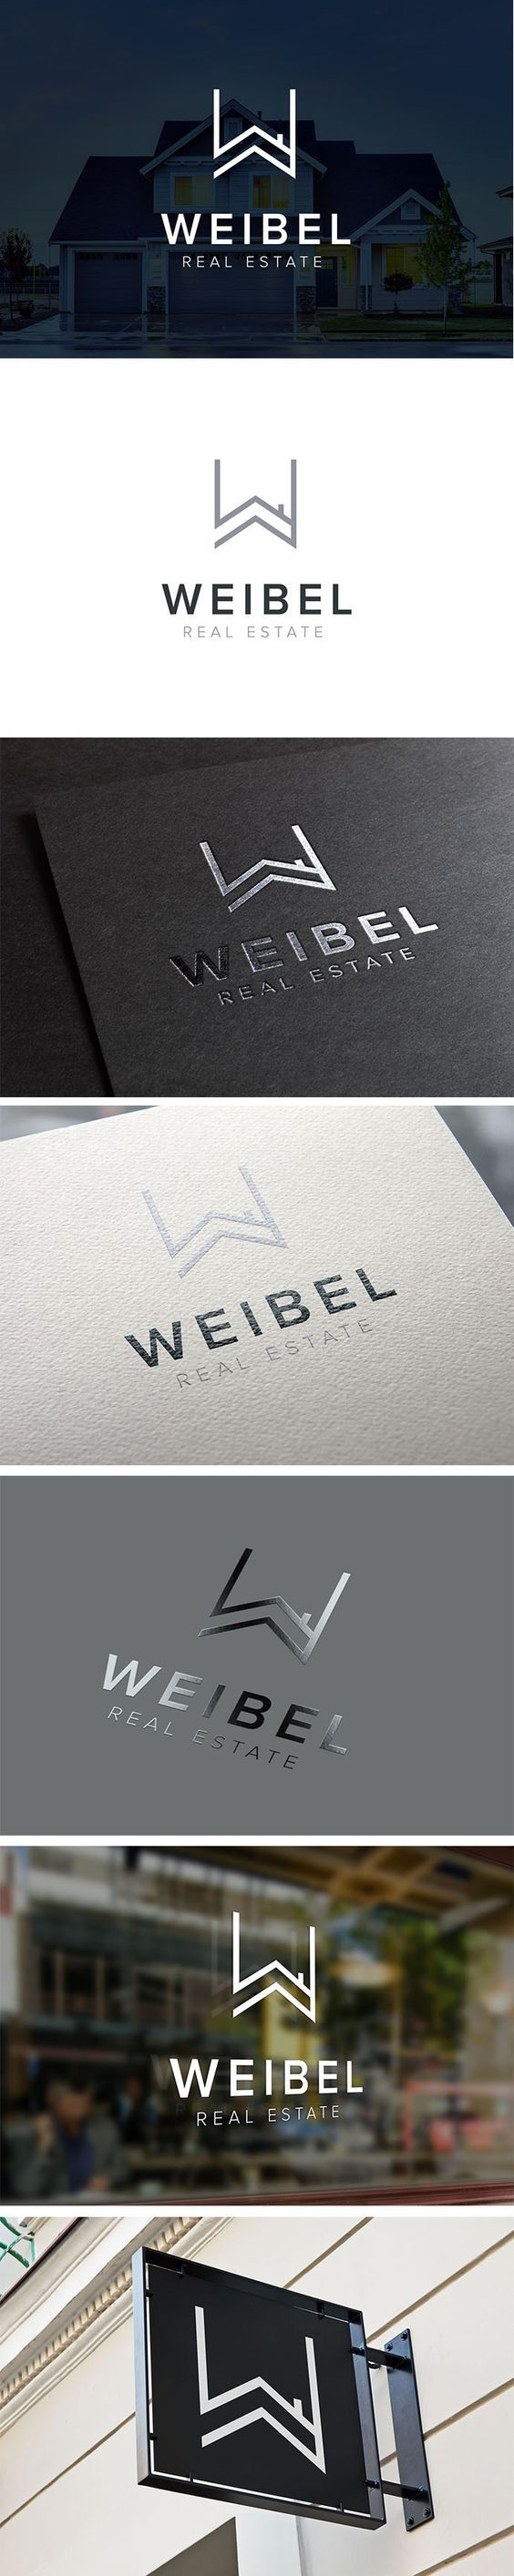 Weibel Real Estate Logo Design, Property Management Brand Identity  |  Letter W, mark, roof, residence, villa, house, property development, Agence Immobilière,  |  Weibel Real Estate, Geneva Switzerland  |  Celine Le Duigou, Freelance Graphic Designer, Perth Australia: